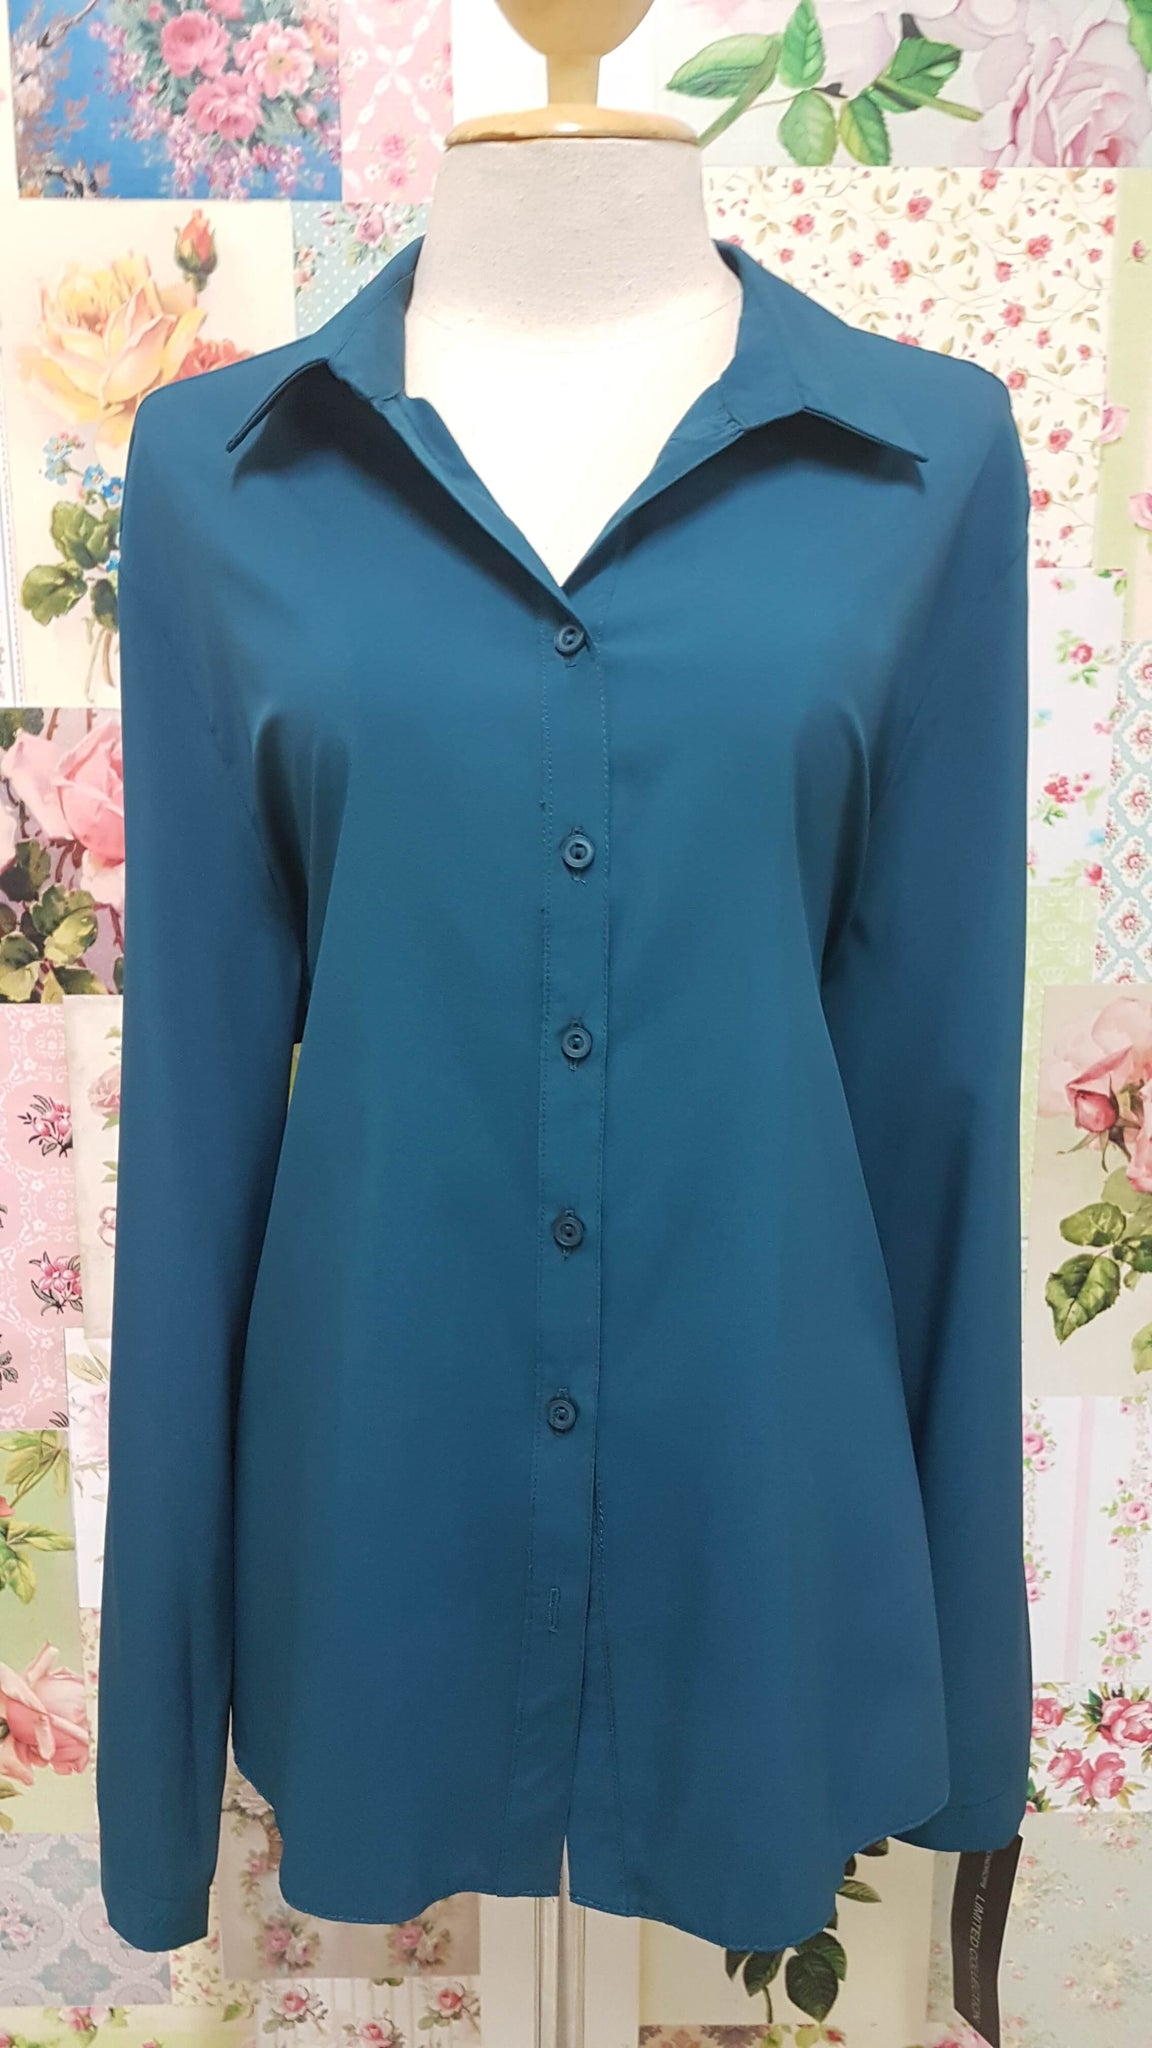 Petrol Blue Blouse BU044